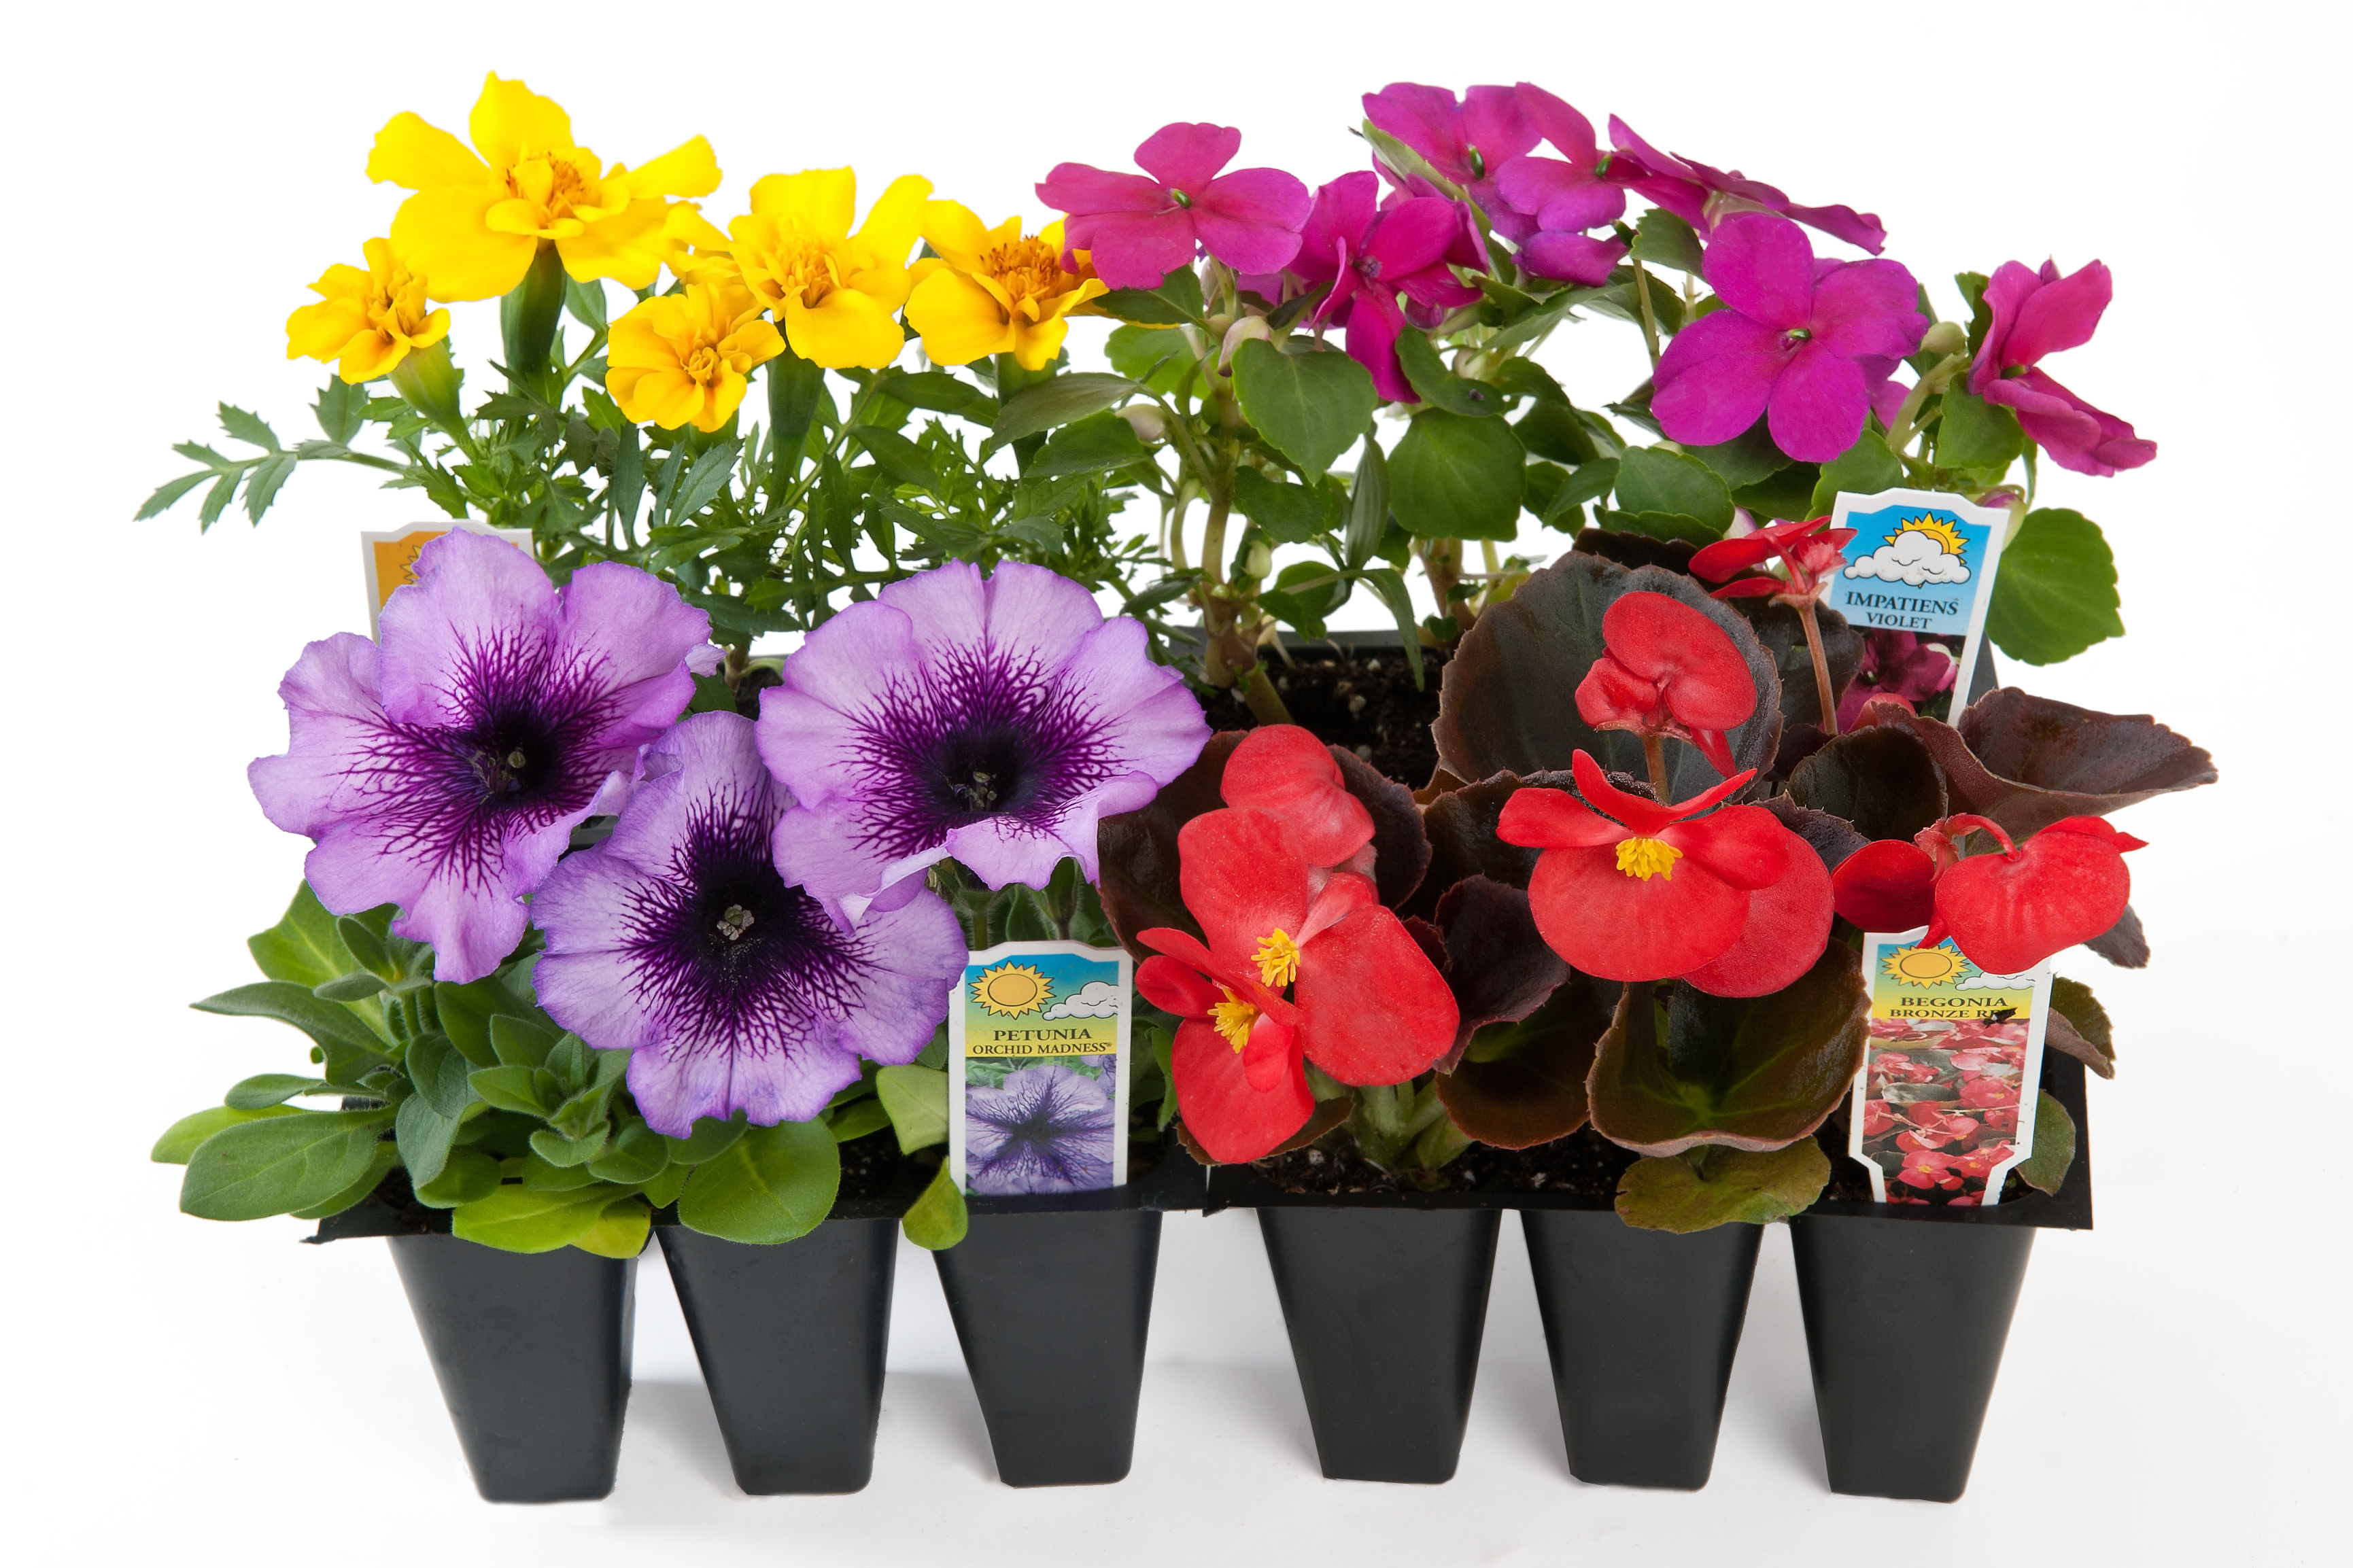 1803 Bedding Plants Wholesale Bedding Plants Hybels Inc